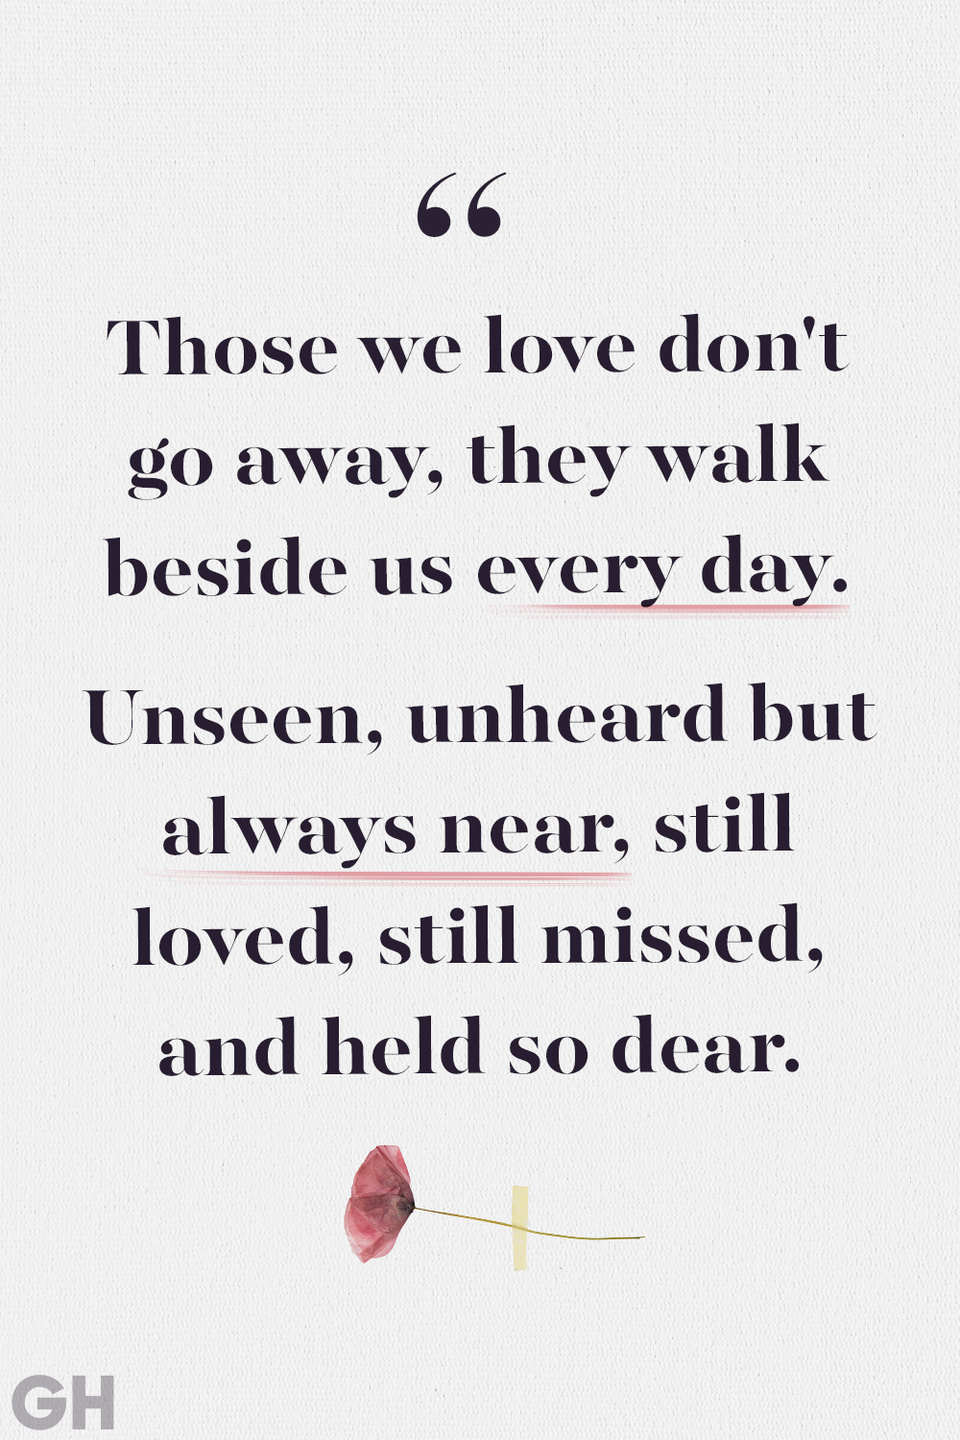 <p>Those we love don't go away, they walk beside us every day. Unseen, unheard but always near, still loved, still missed, and held so dear.</p>